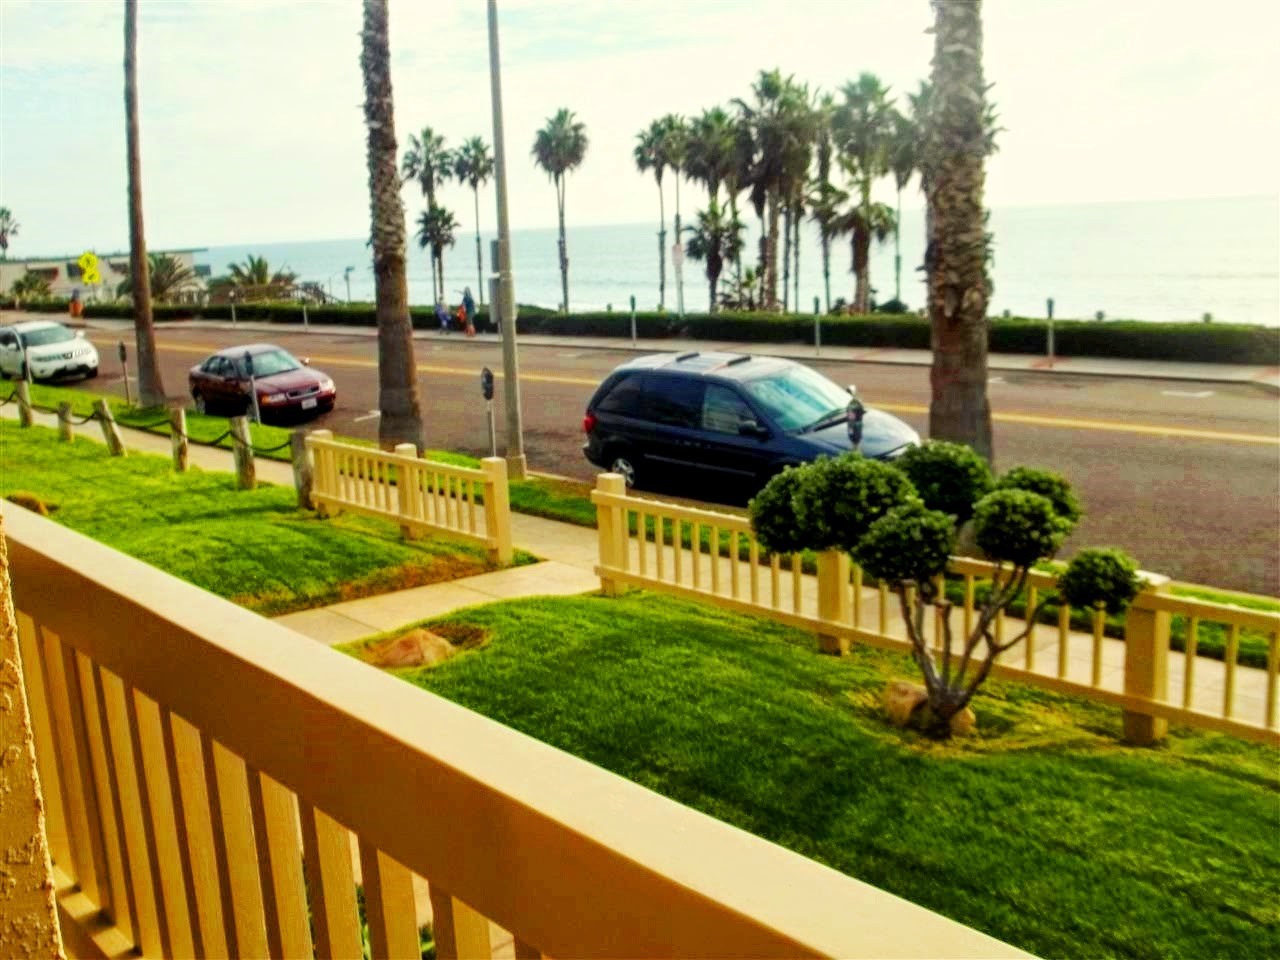 140 PACIFIC - Oceanside, CA 92054